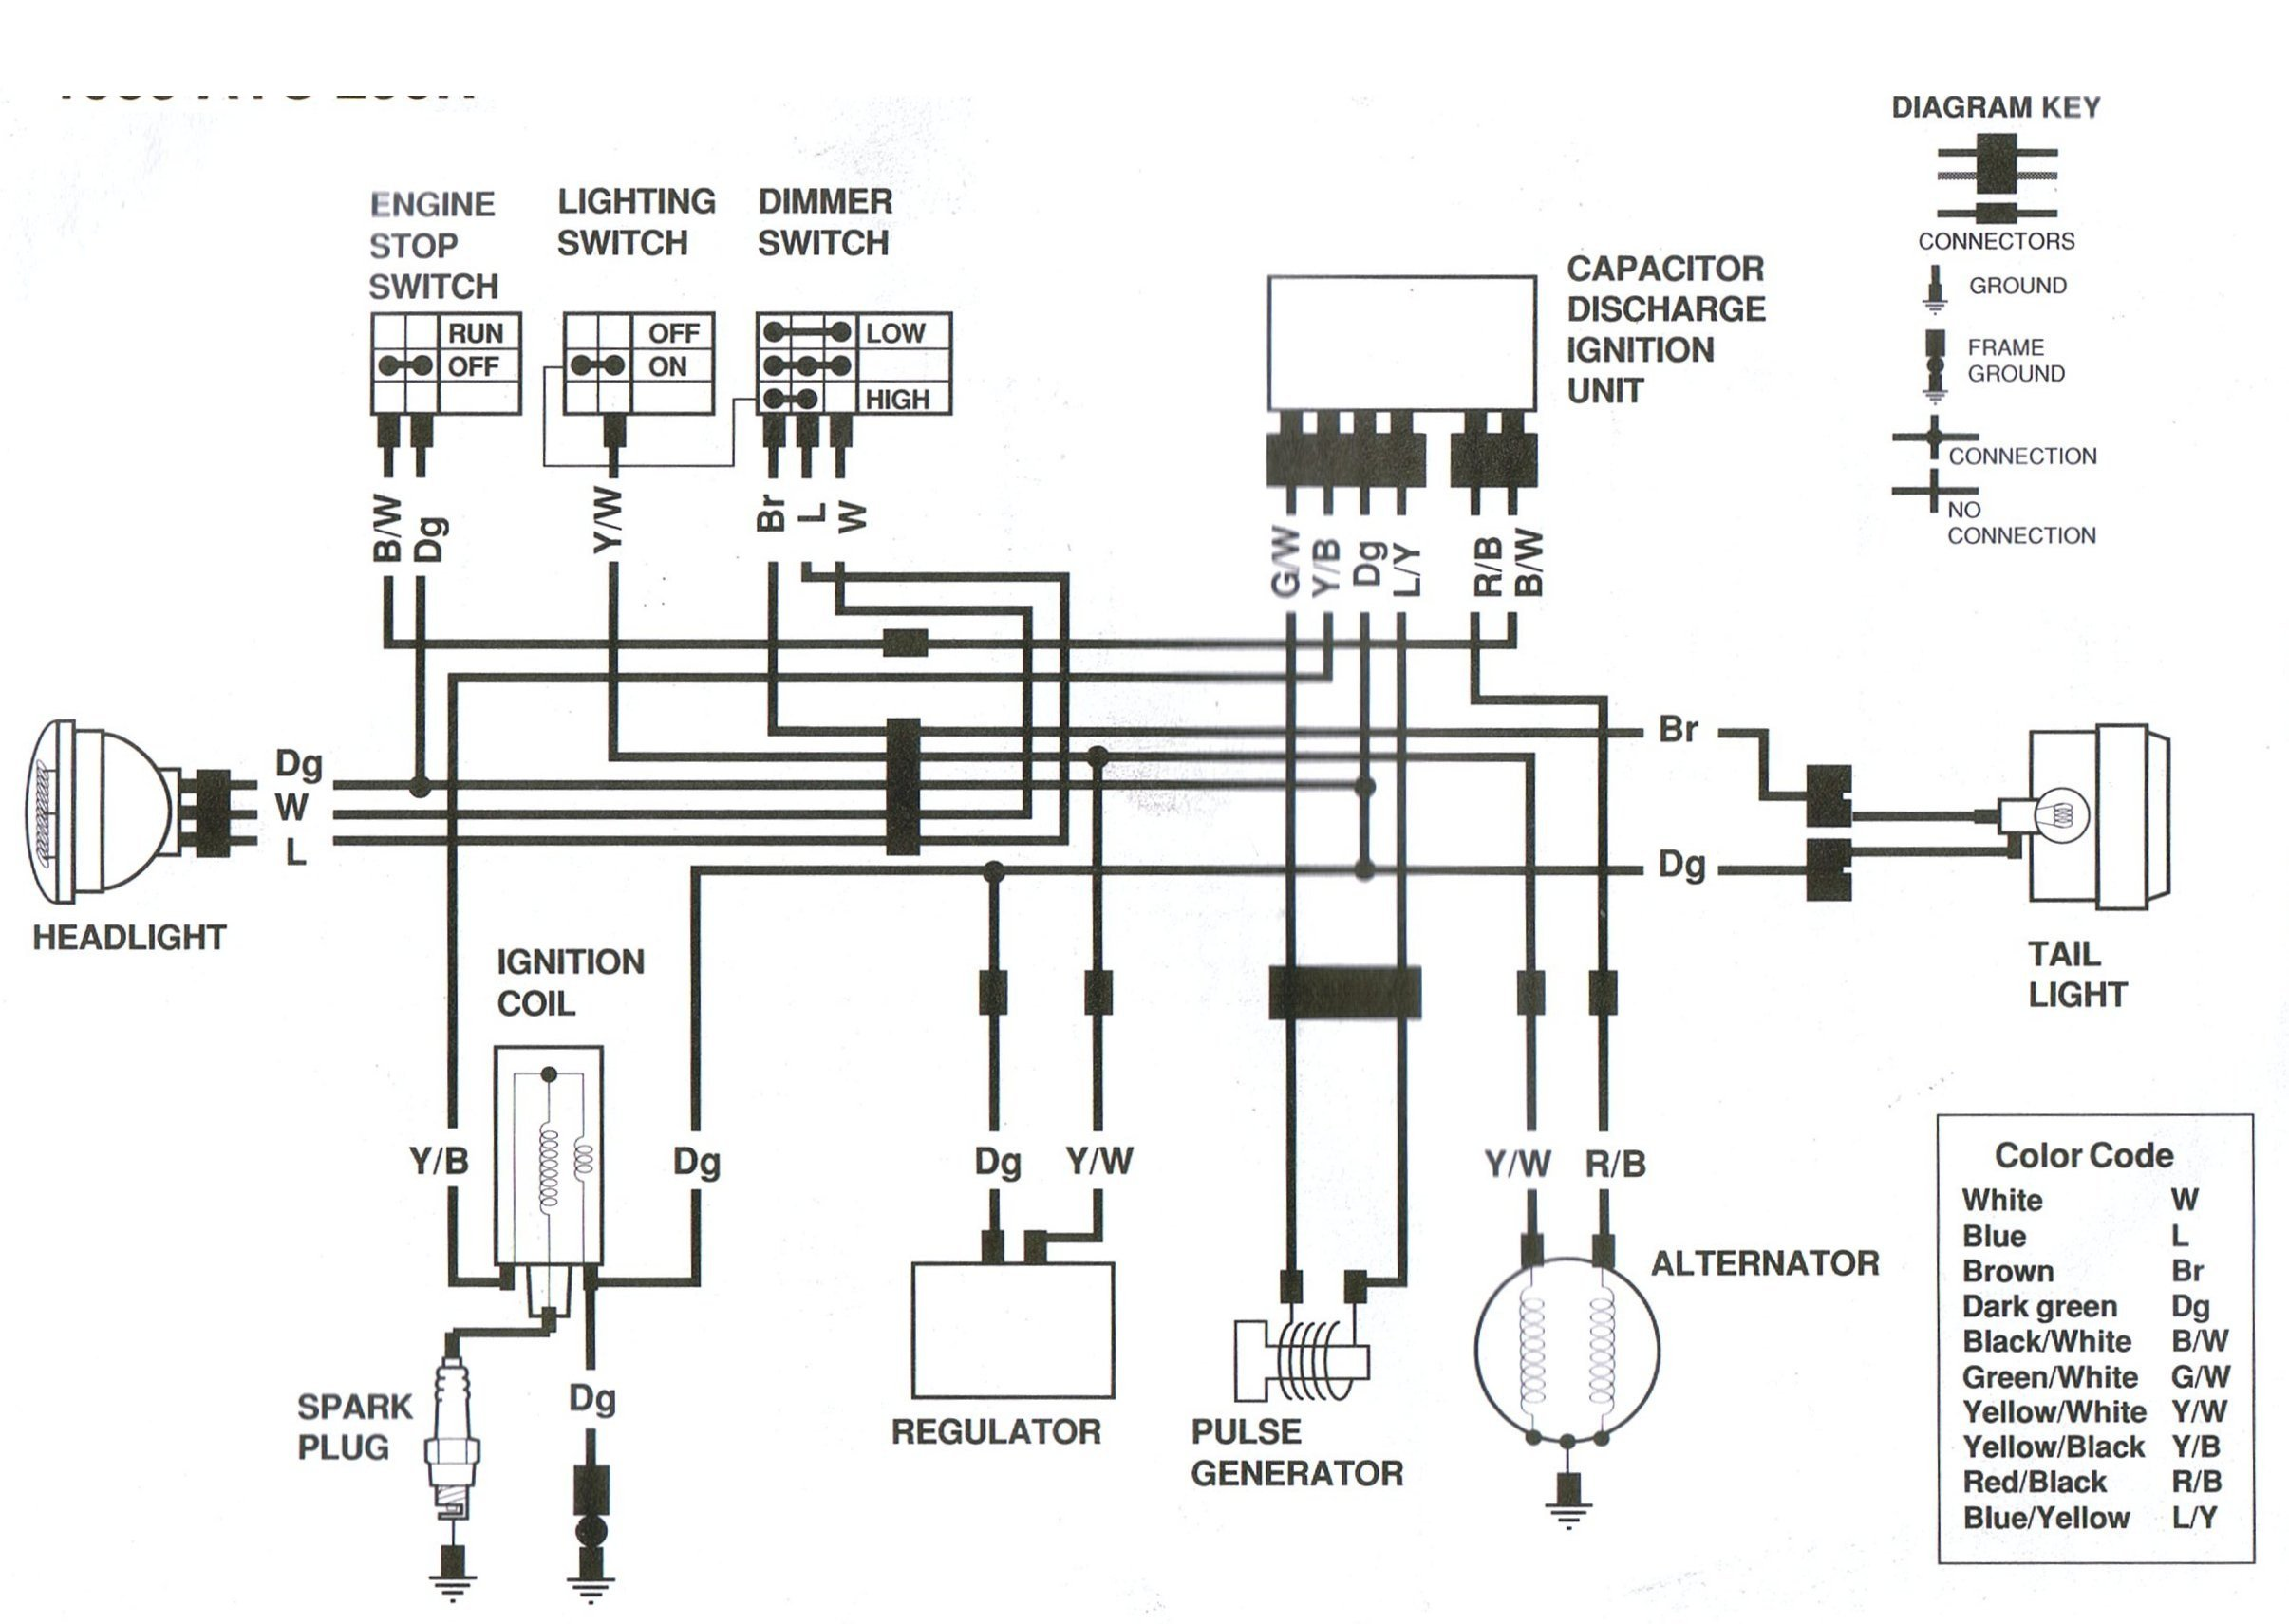 1994 suzuki king quad 300 wiring diagram